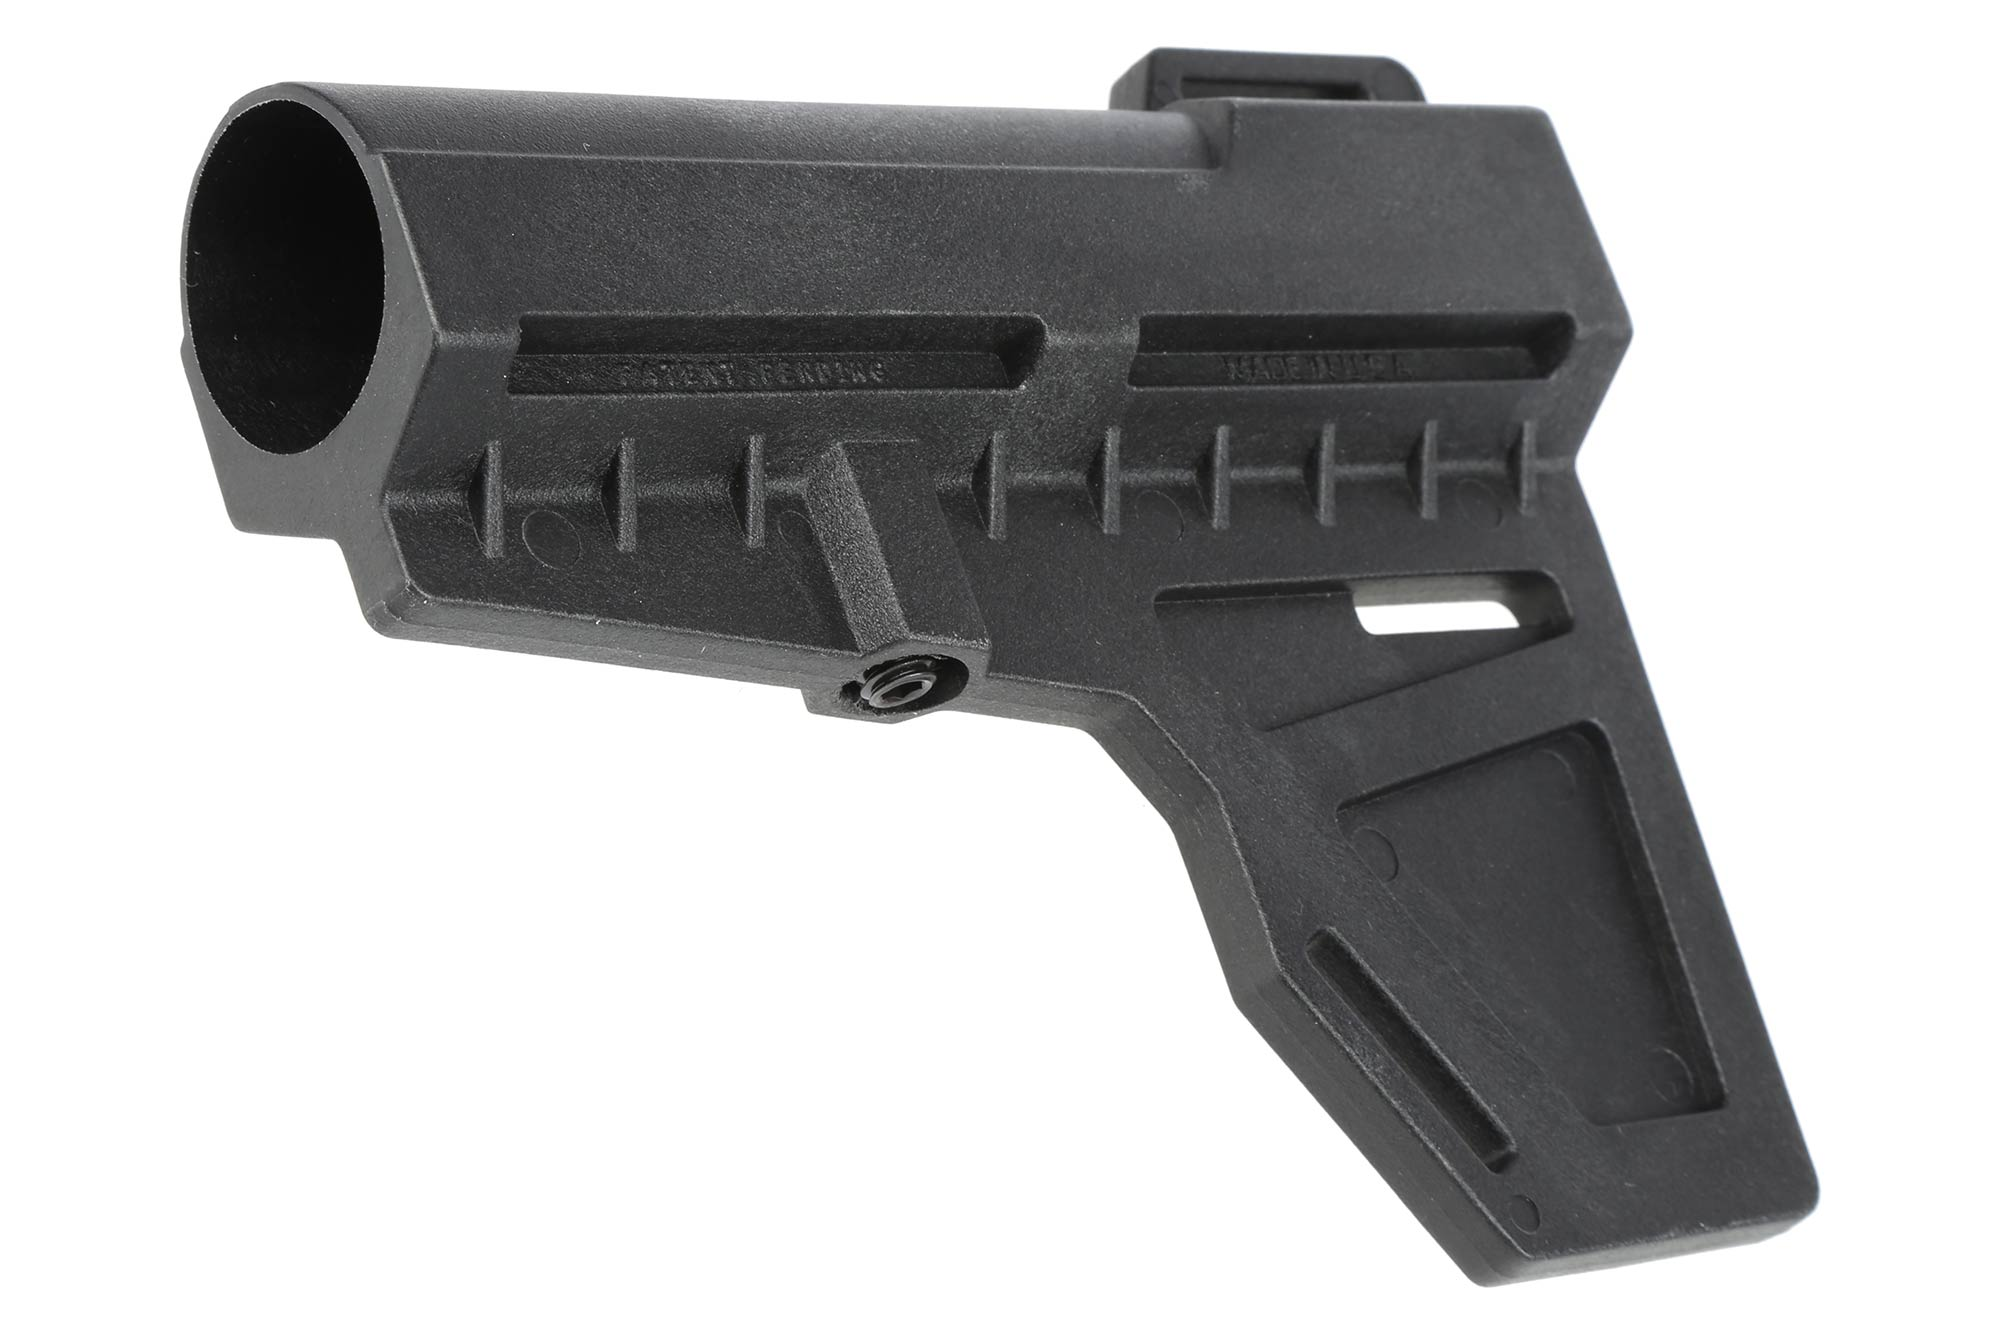 KAK Shockwave Blade Stabilizer for AR Pistol